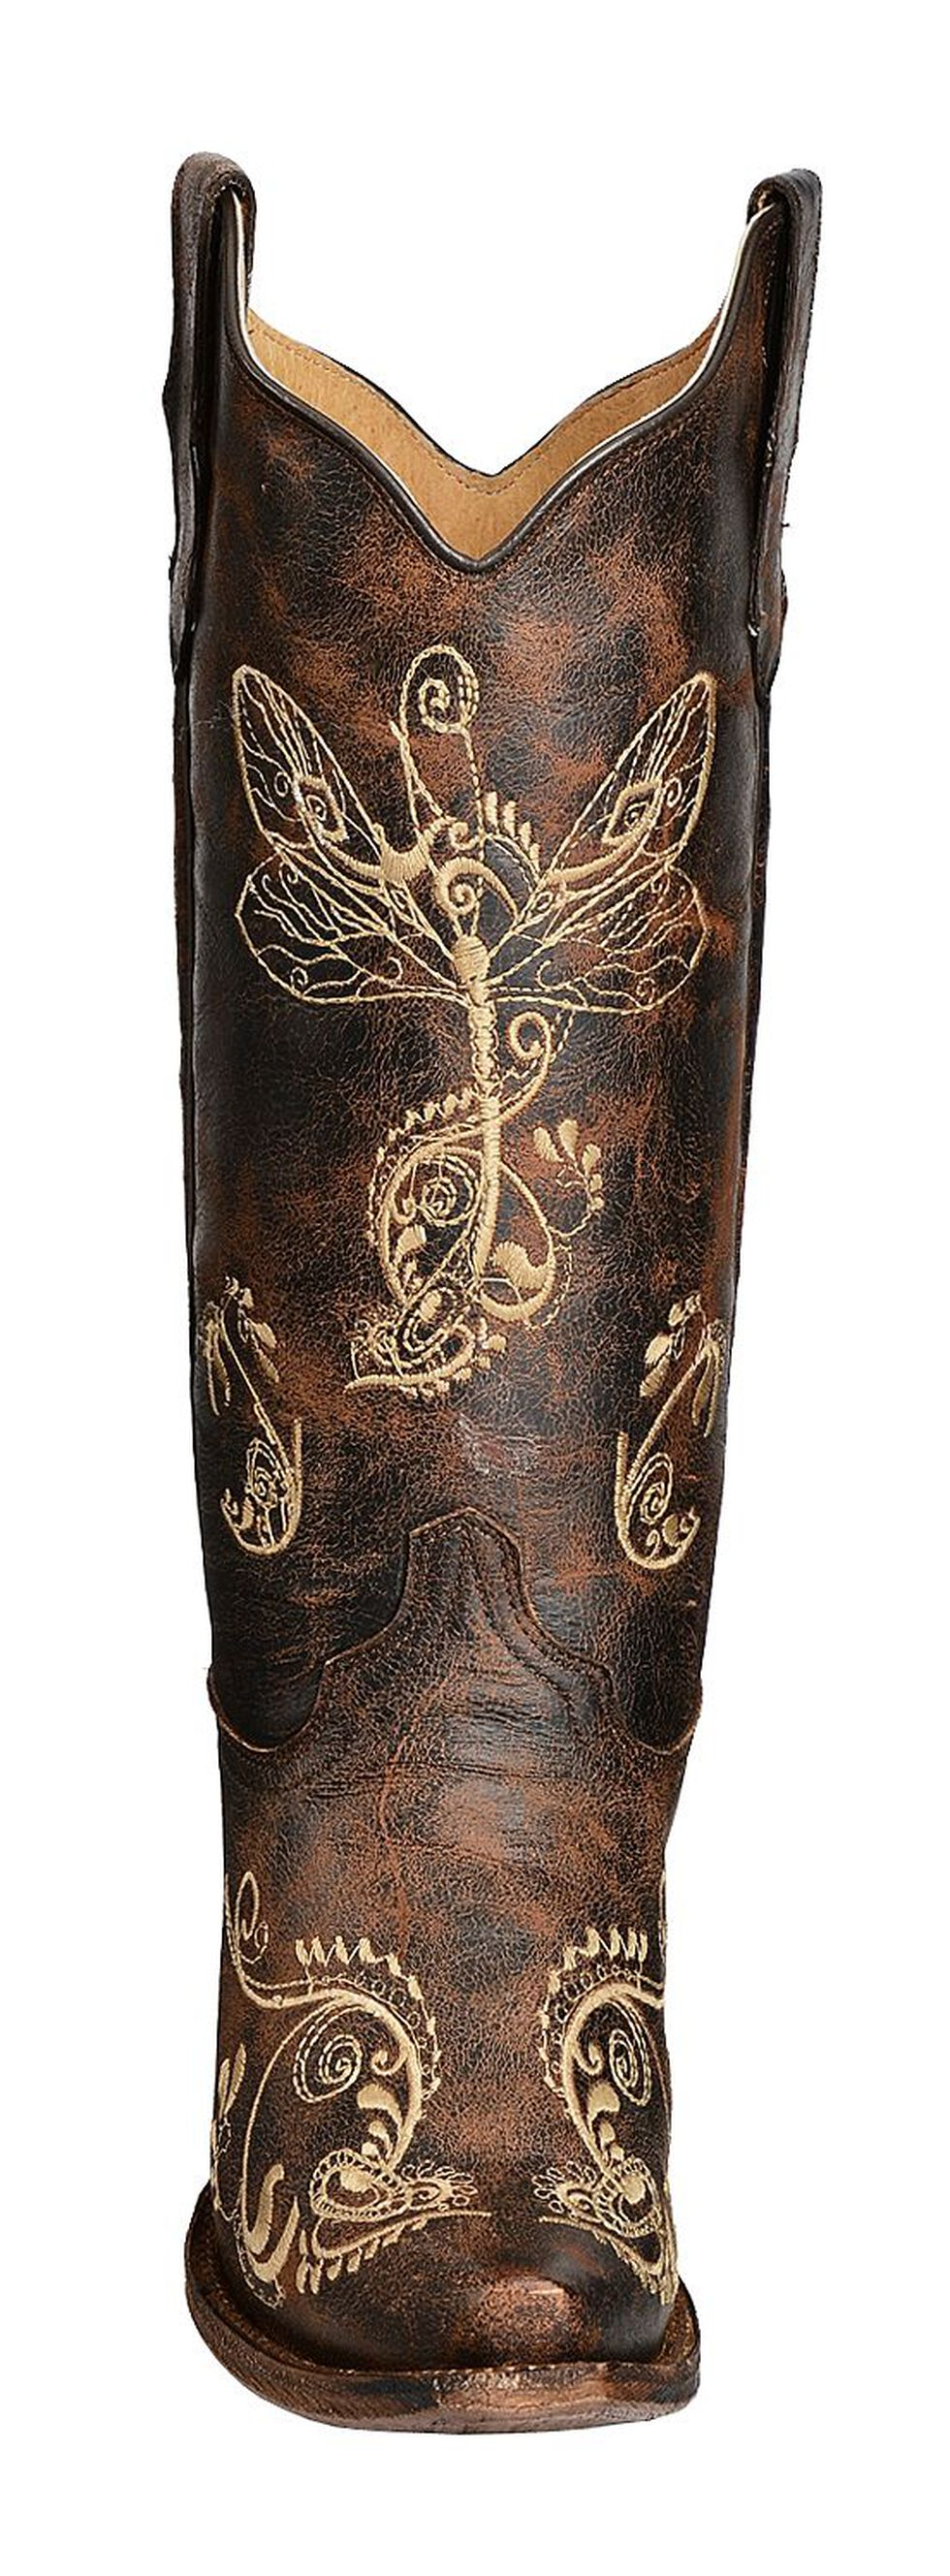 Circle G Distressed Bone Dragonfly Embroidered Boots - Snip Toe, Brown, hi-res